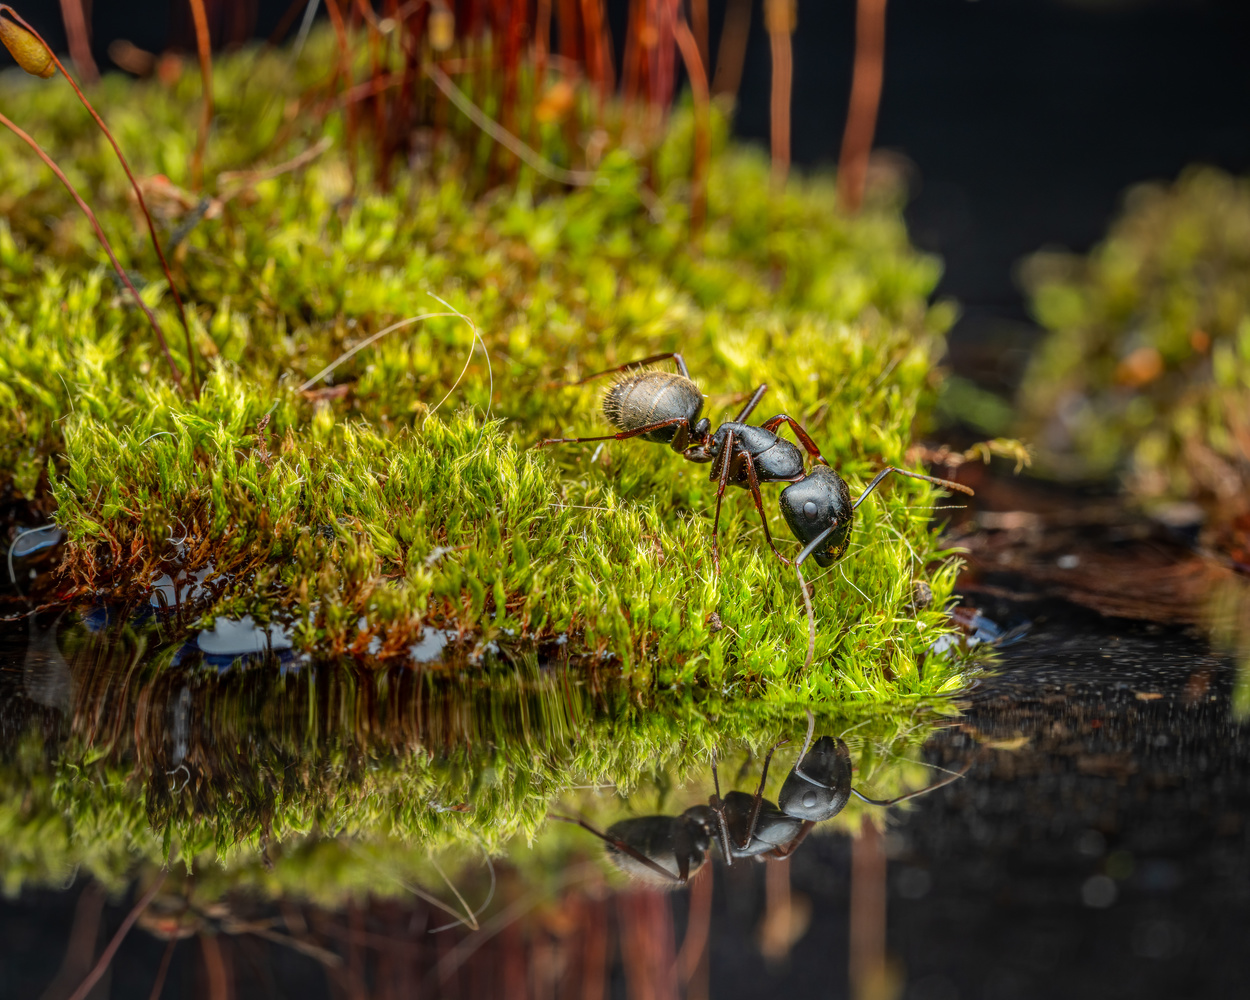 Ant reflection by Skyler Ewing